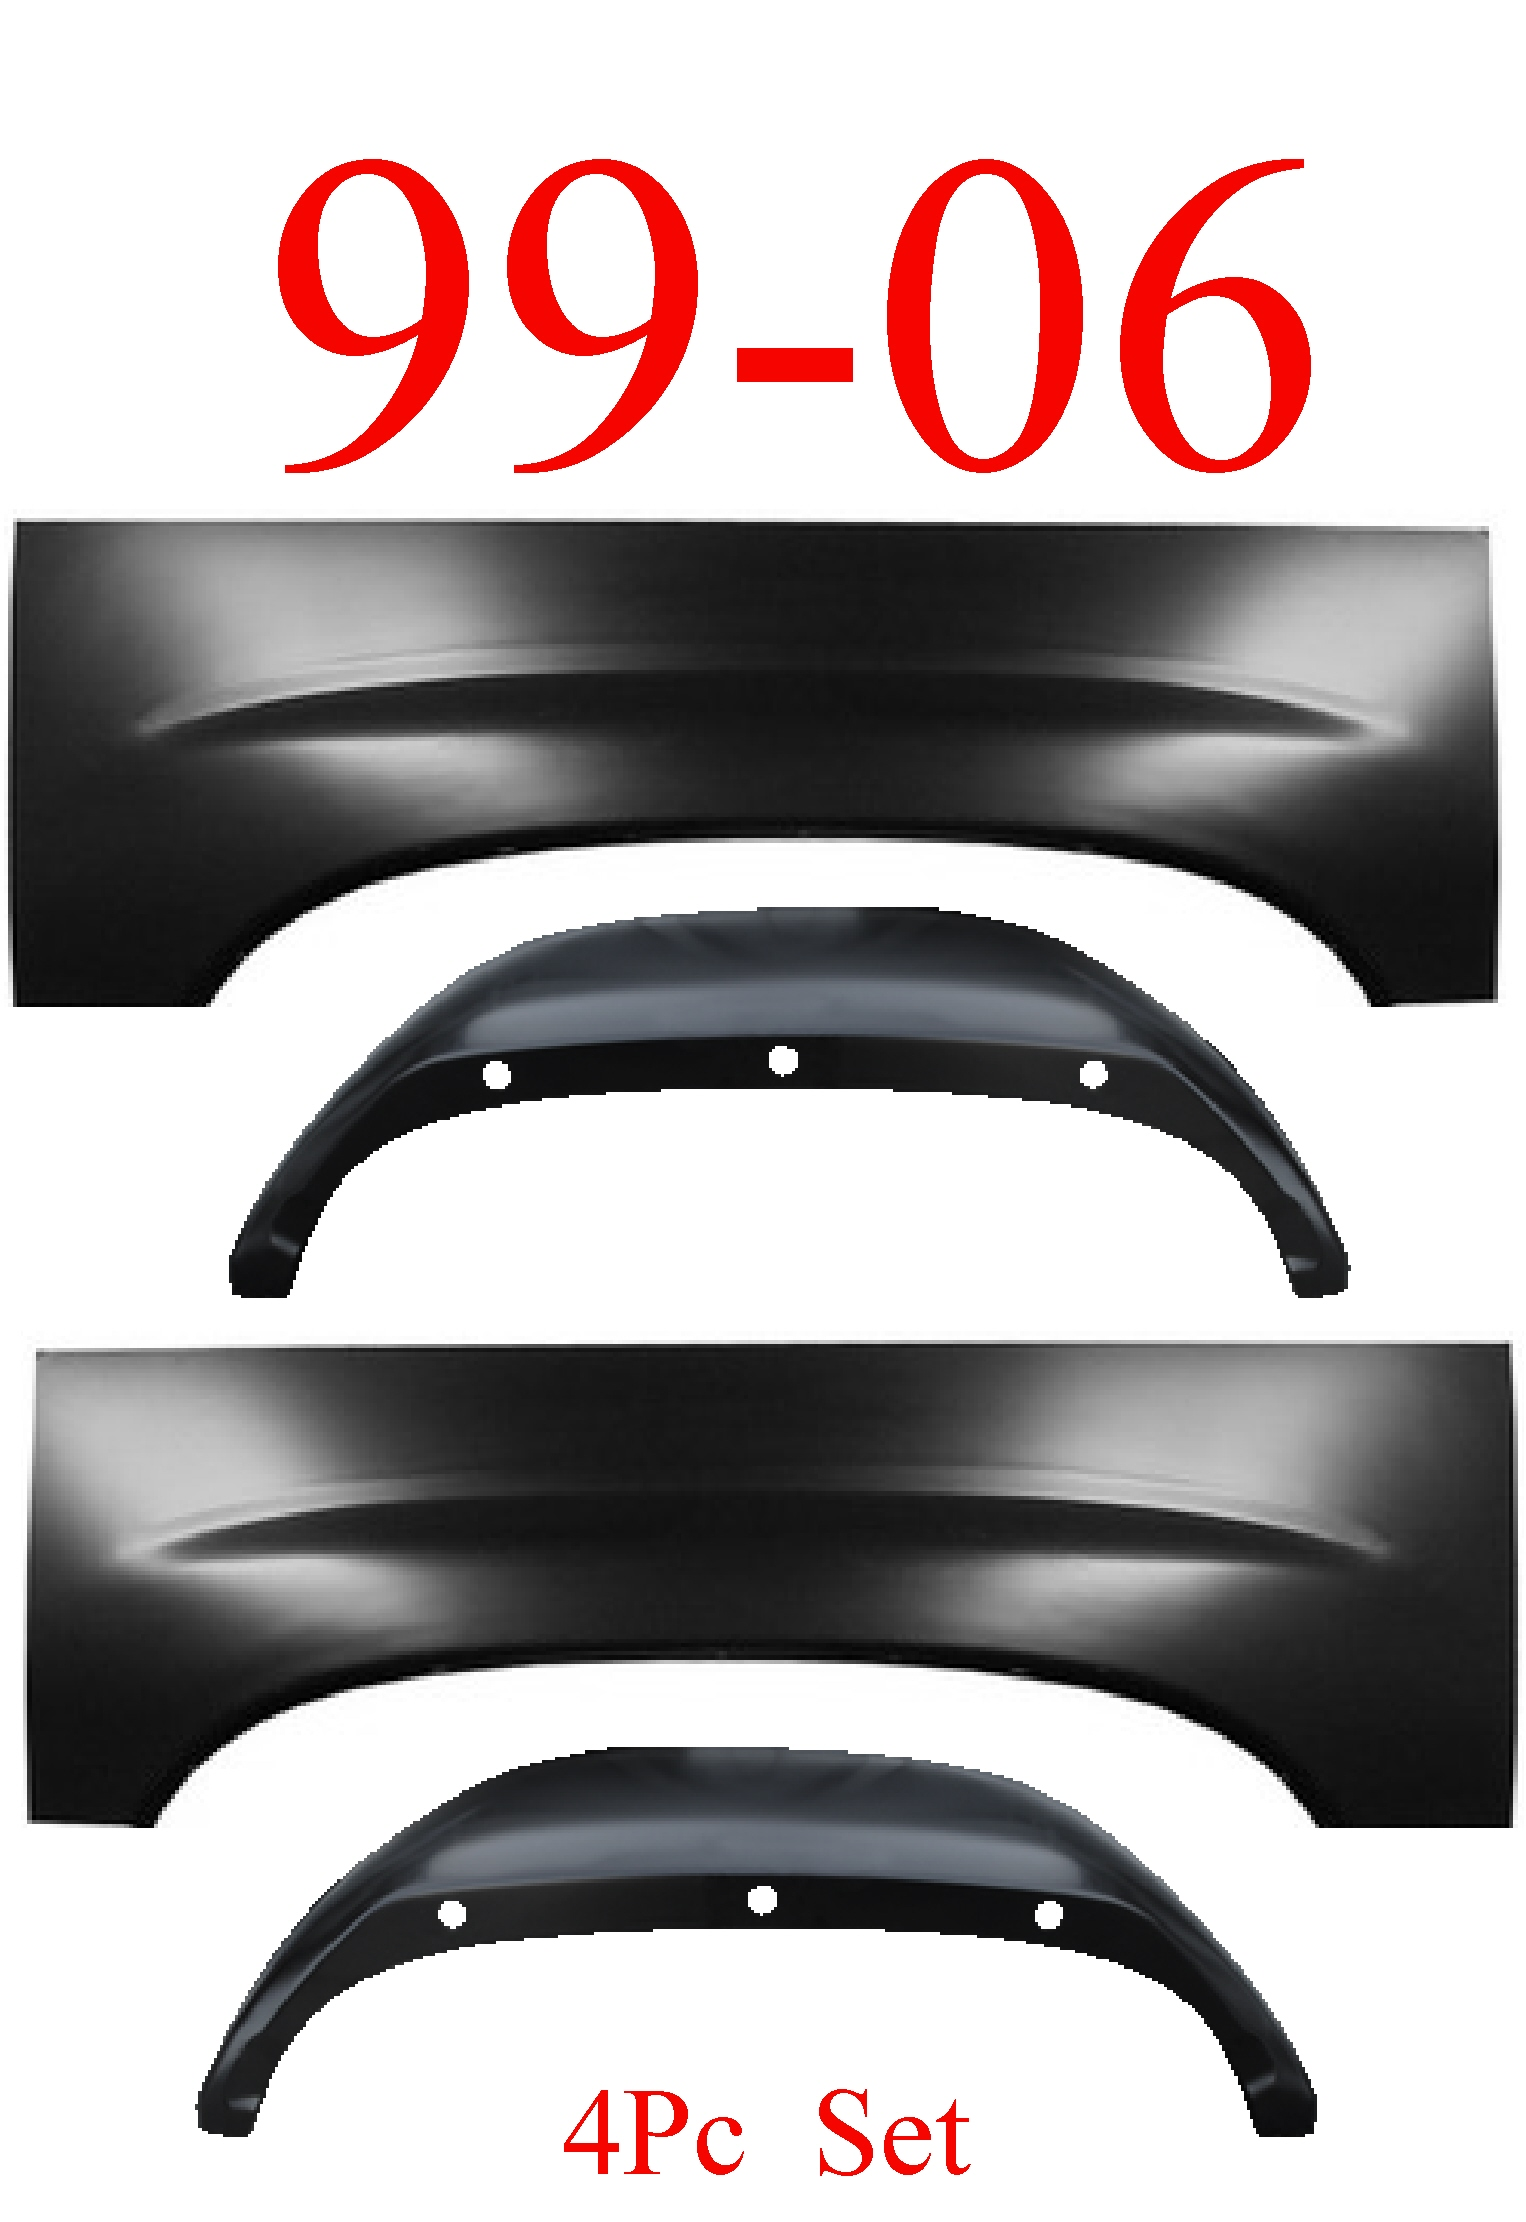 99-06 4Pc Chevy Upper Arch & Inner Arch Left & Right